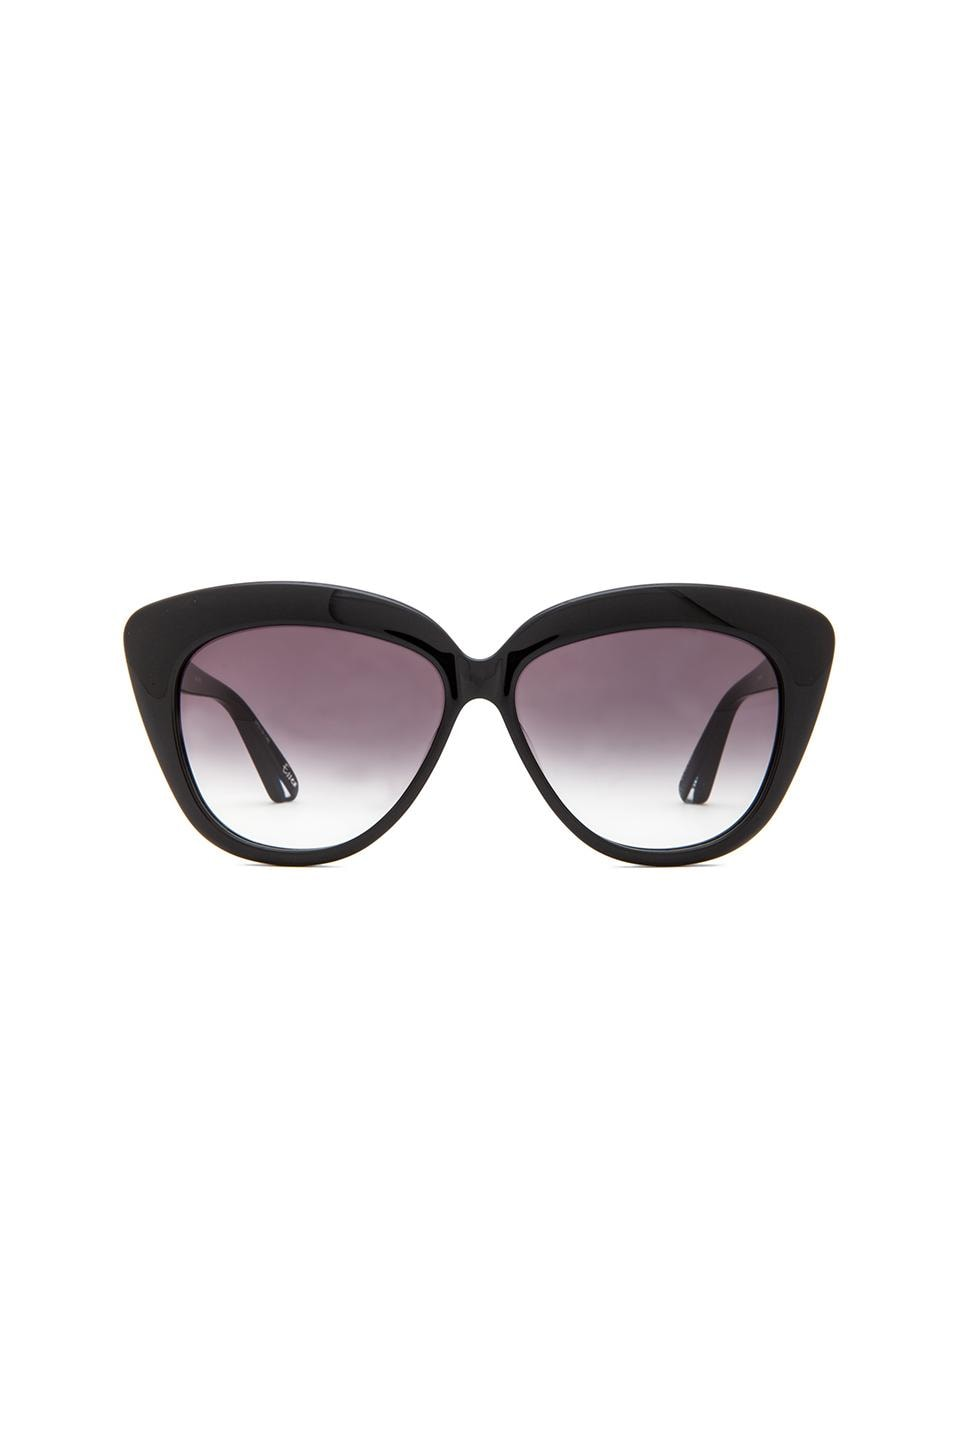 Elizabeth and James Essex Sunglasses in Black